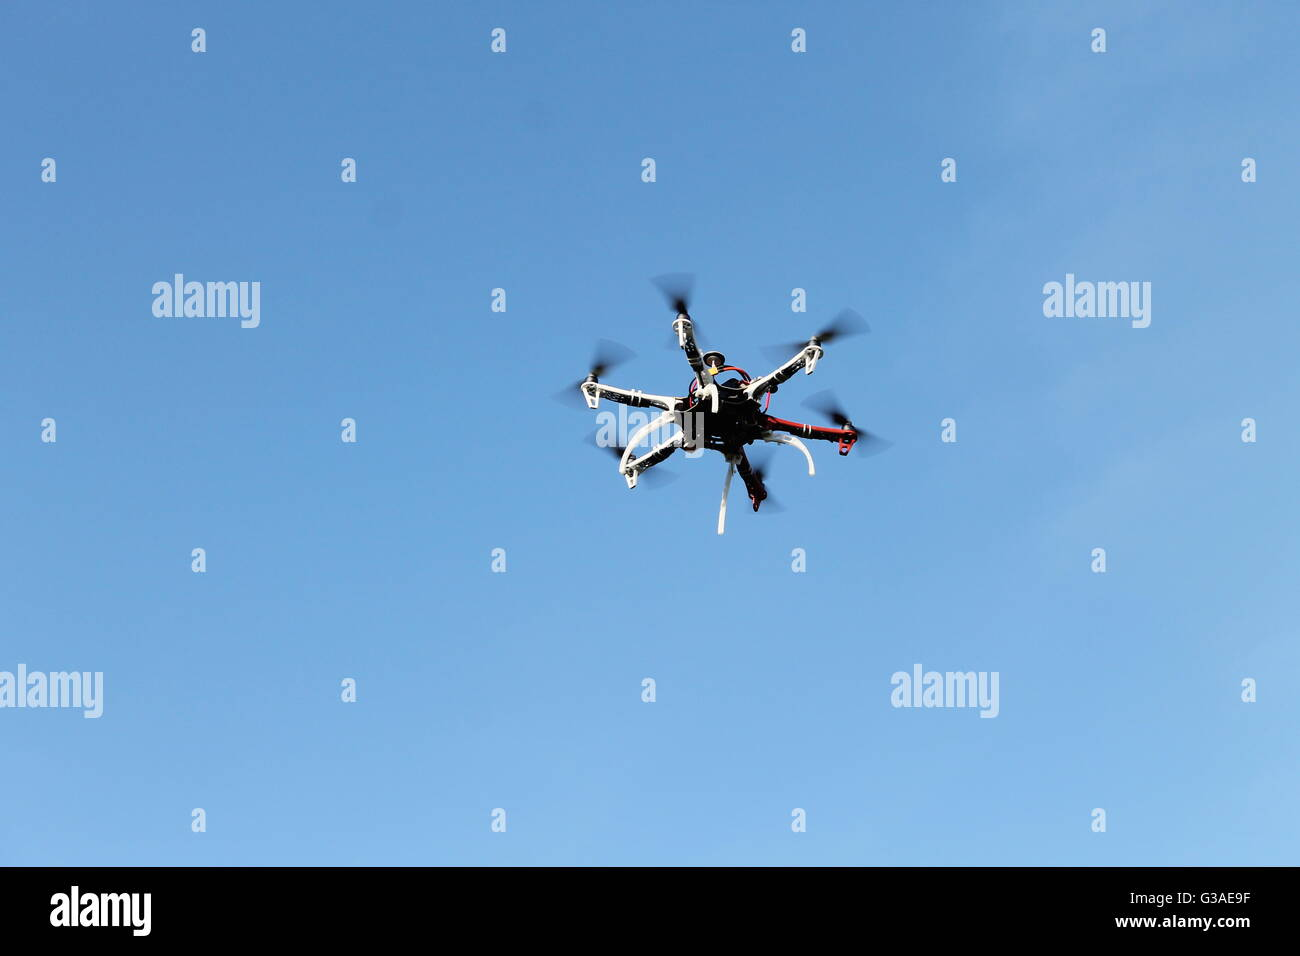 drone, radio controlled, toy, in flight, aerial, drone operator, gadget, boy's toy - Stock Image